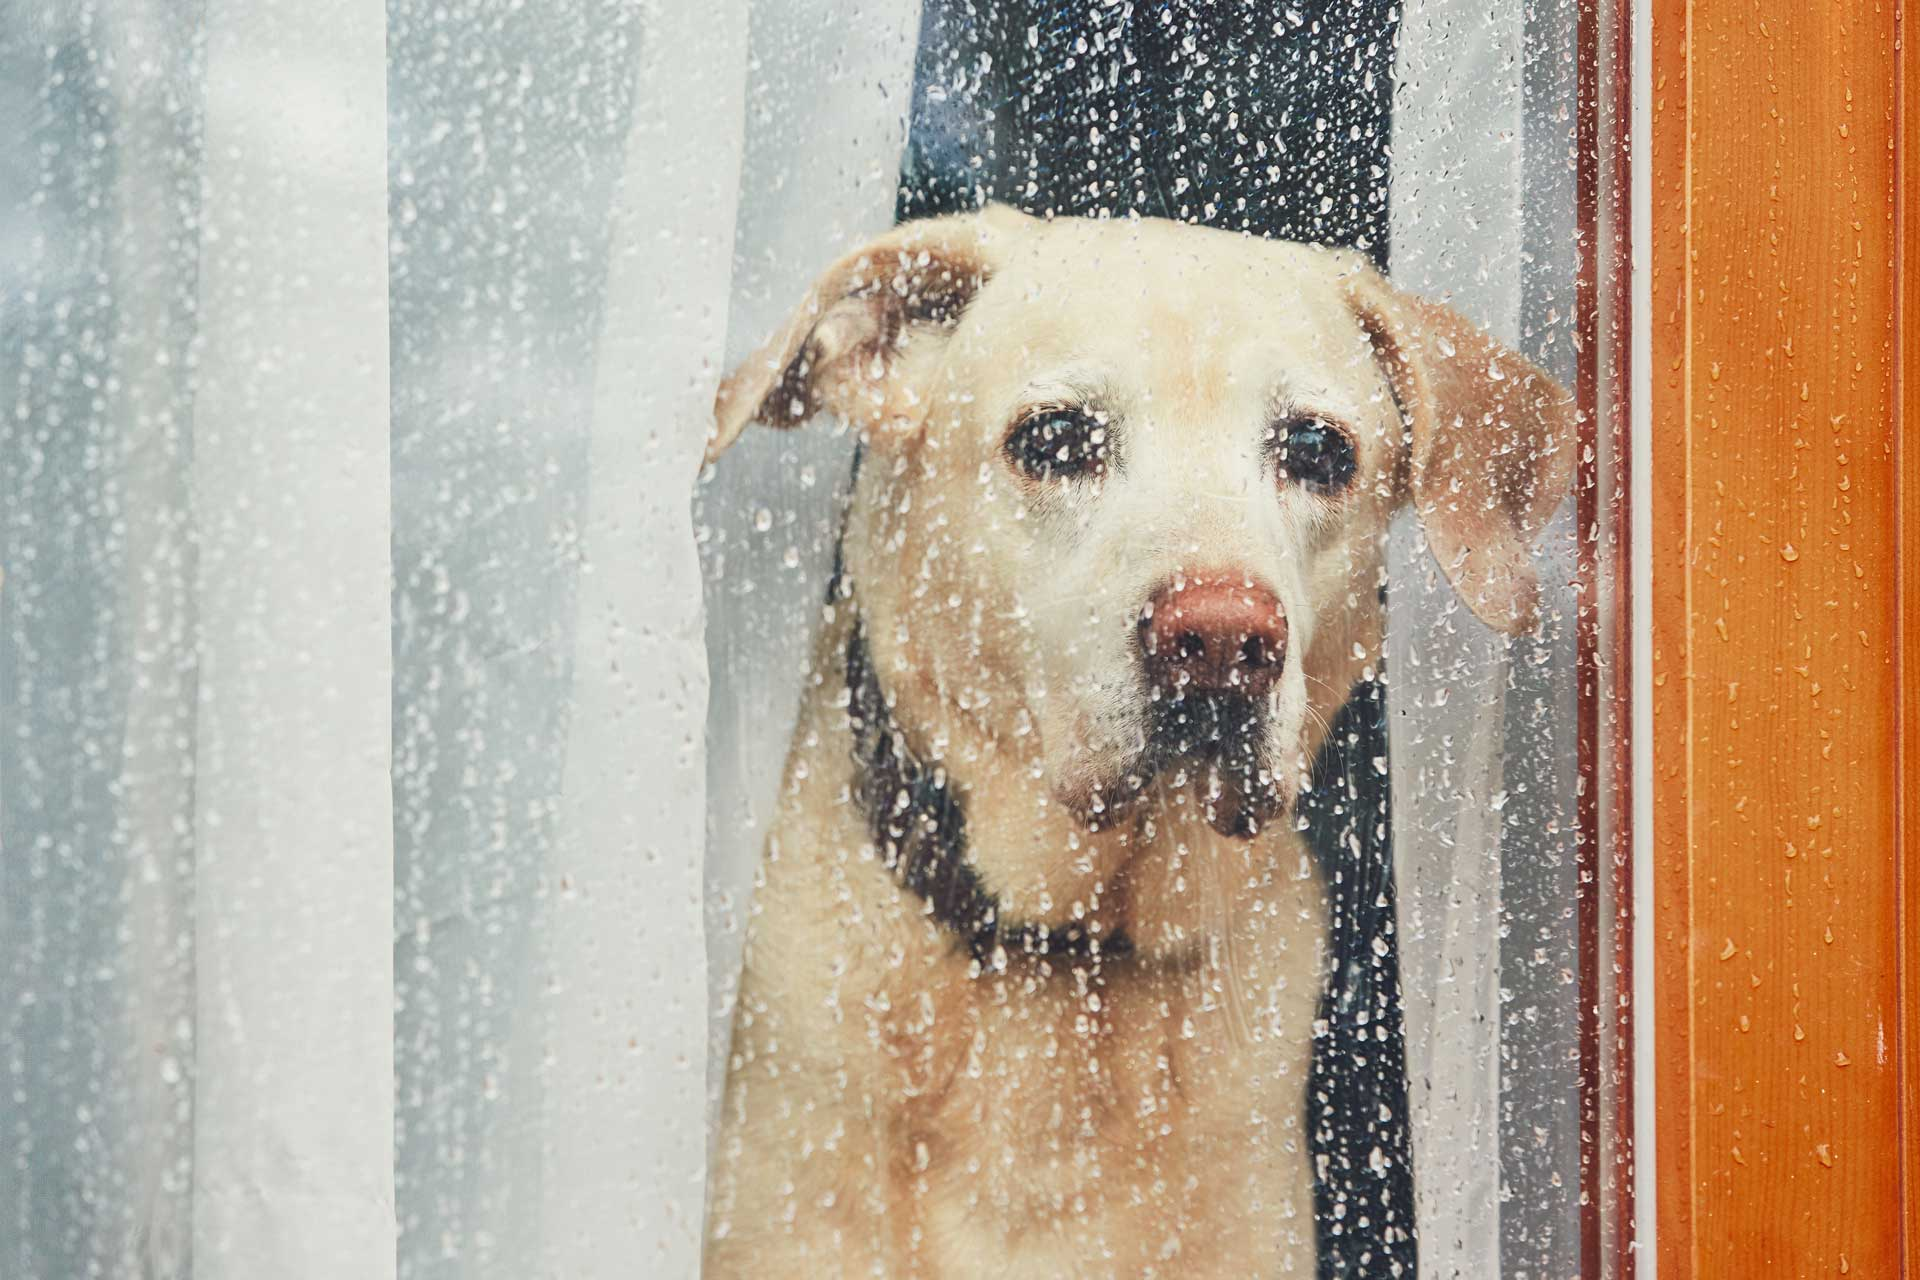 image of puppy stuck indoors due to rainy weather - impact on carpets